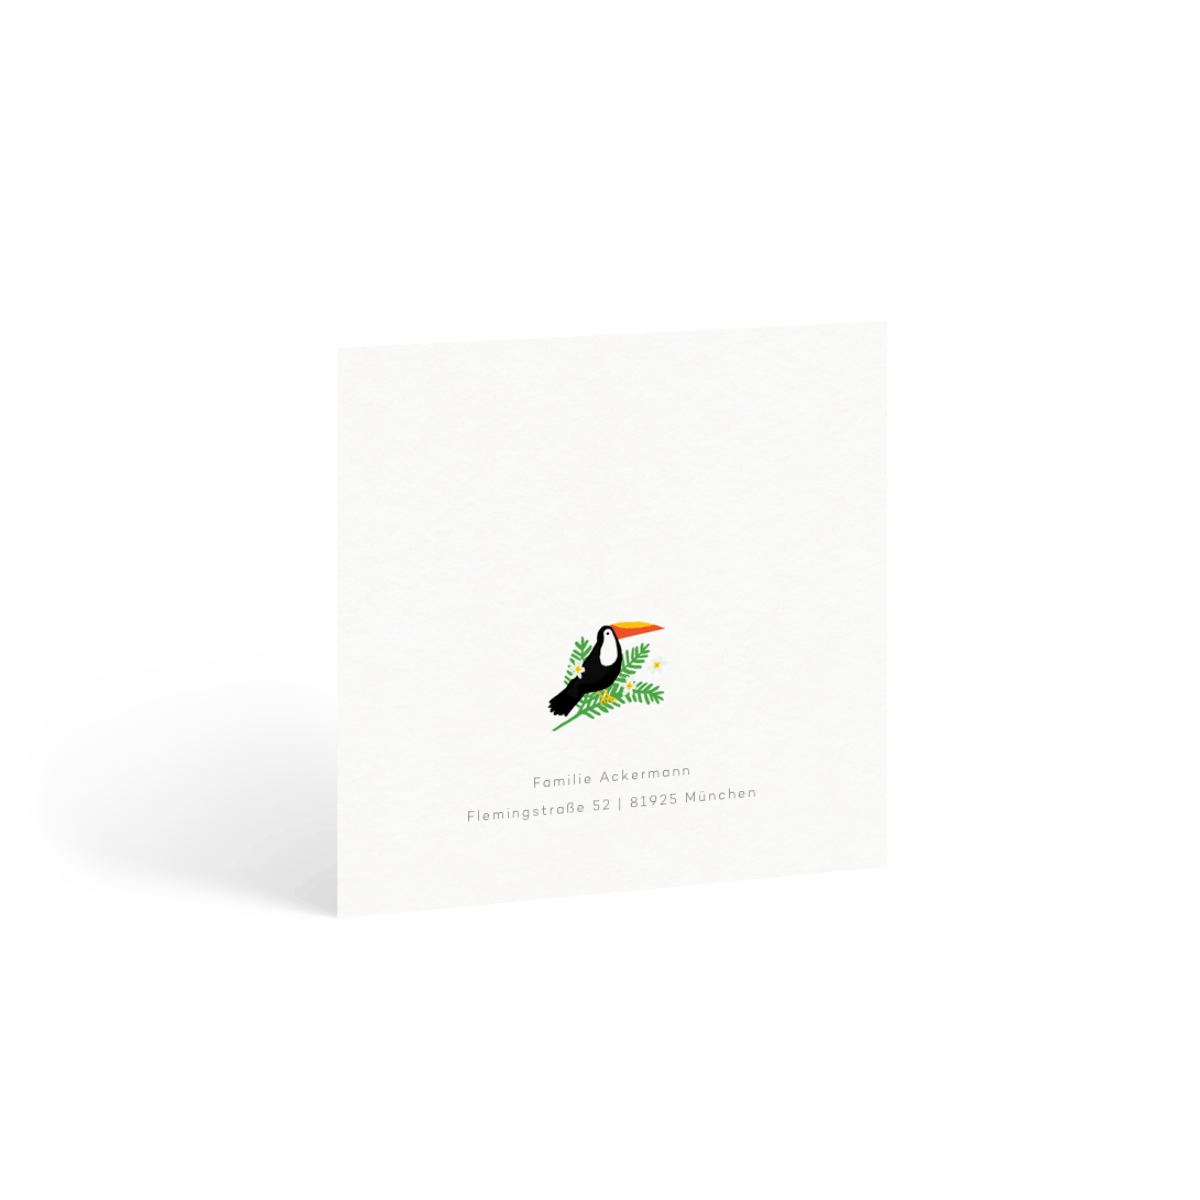 Https%3a%2f%2fwww.papier.com%2fproduct image%2f79178%2f50%2ftoucan jungle 17621 rueckseite 1560205773.png?ixlib=rb 1.1